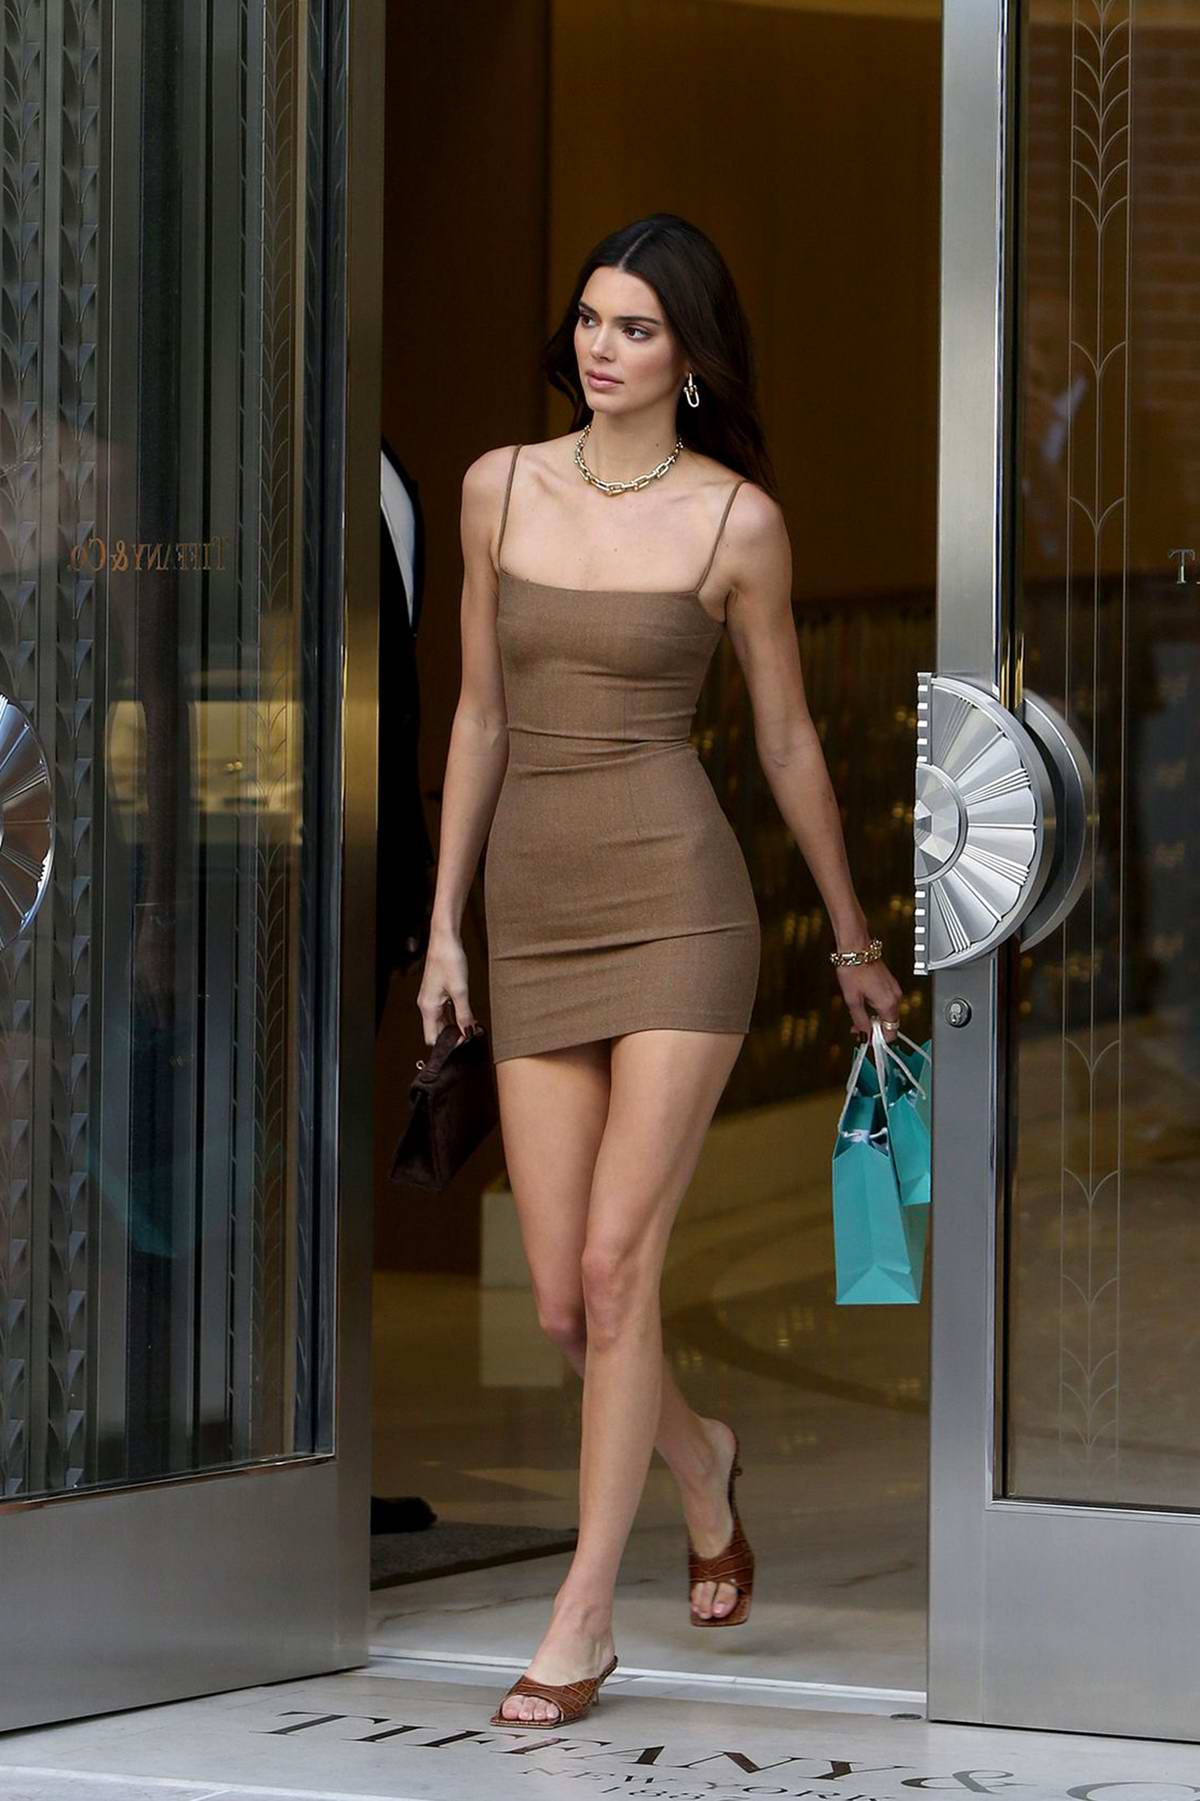 Kendall Jenner stuns in a brown mini dress while shopping at Tiffany & Co on Rodeo Drive in Beverly Hills, Los Angeles